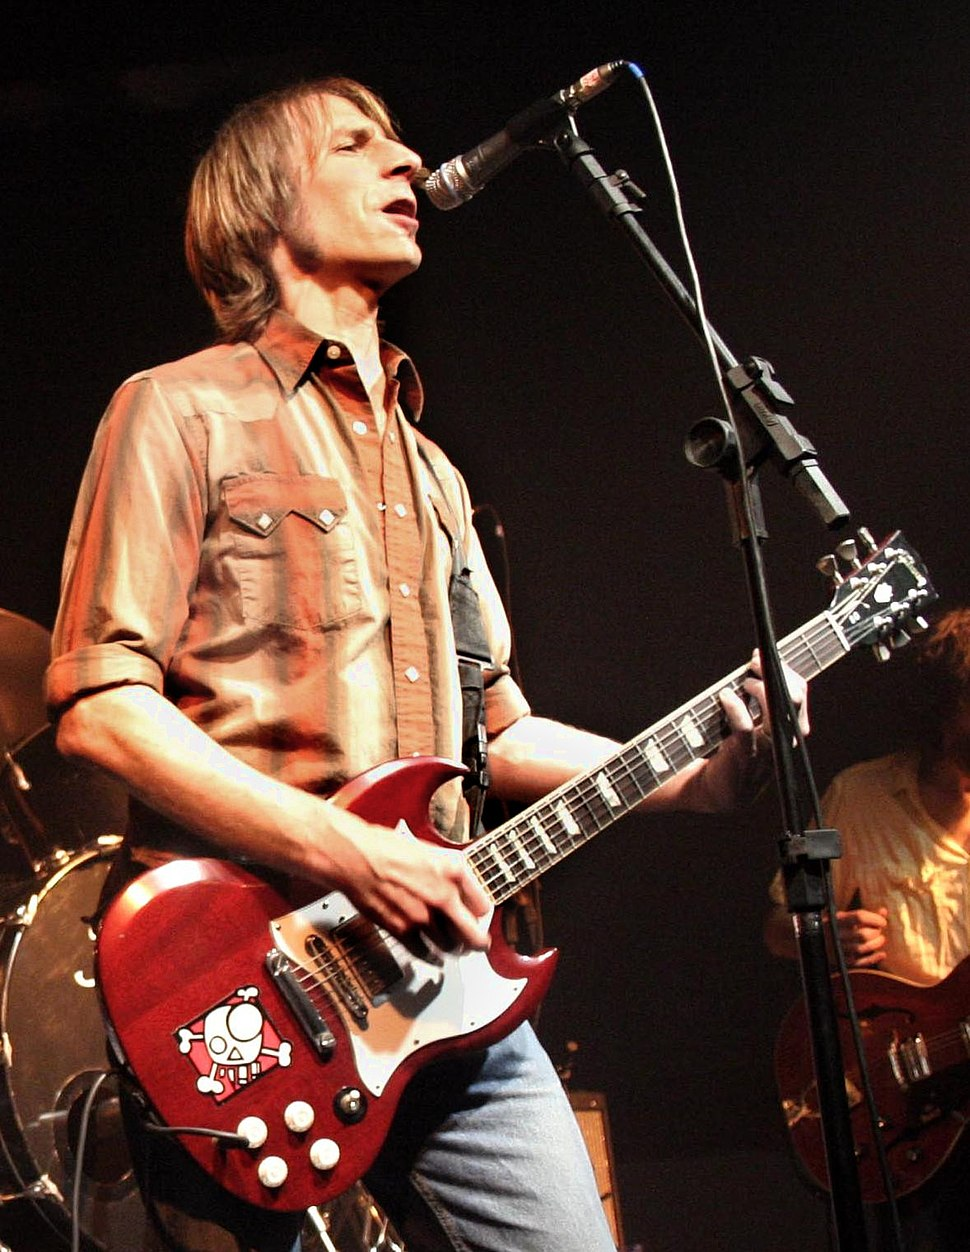 A male guitarist and singer, Mark Arm, is onstage, holding an electric guitar.